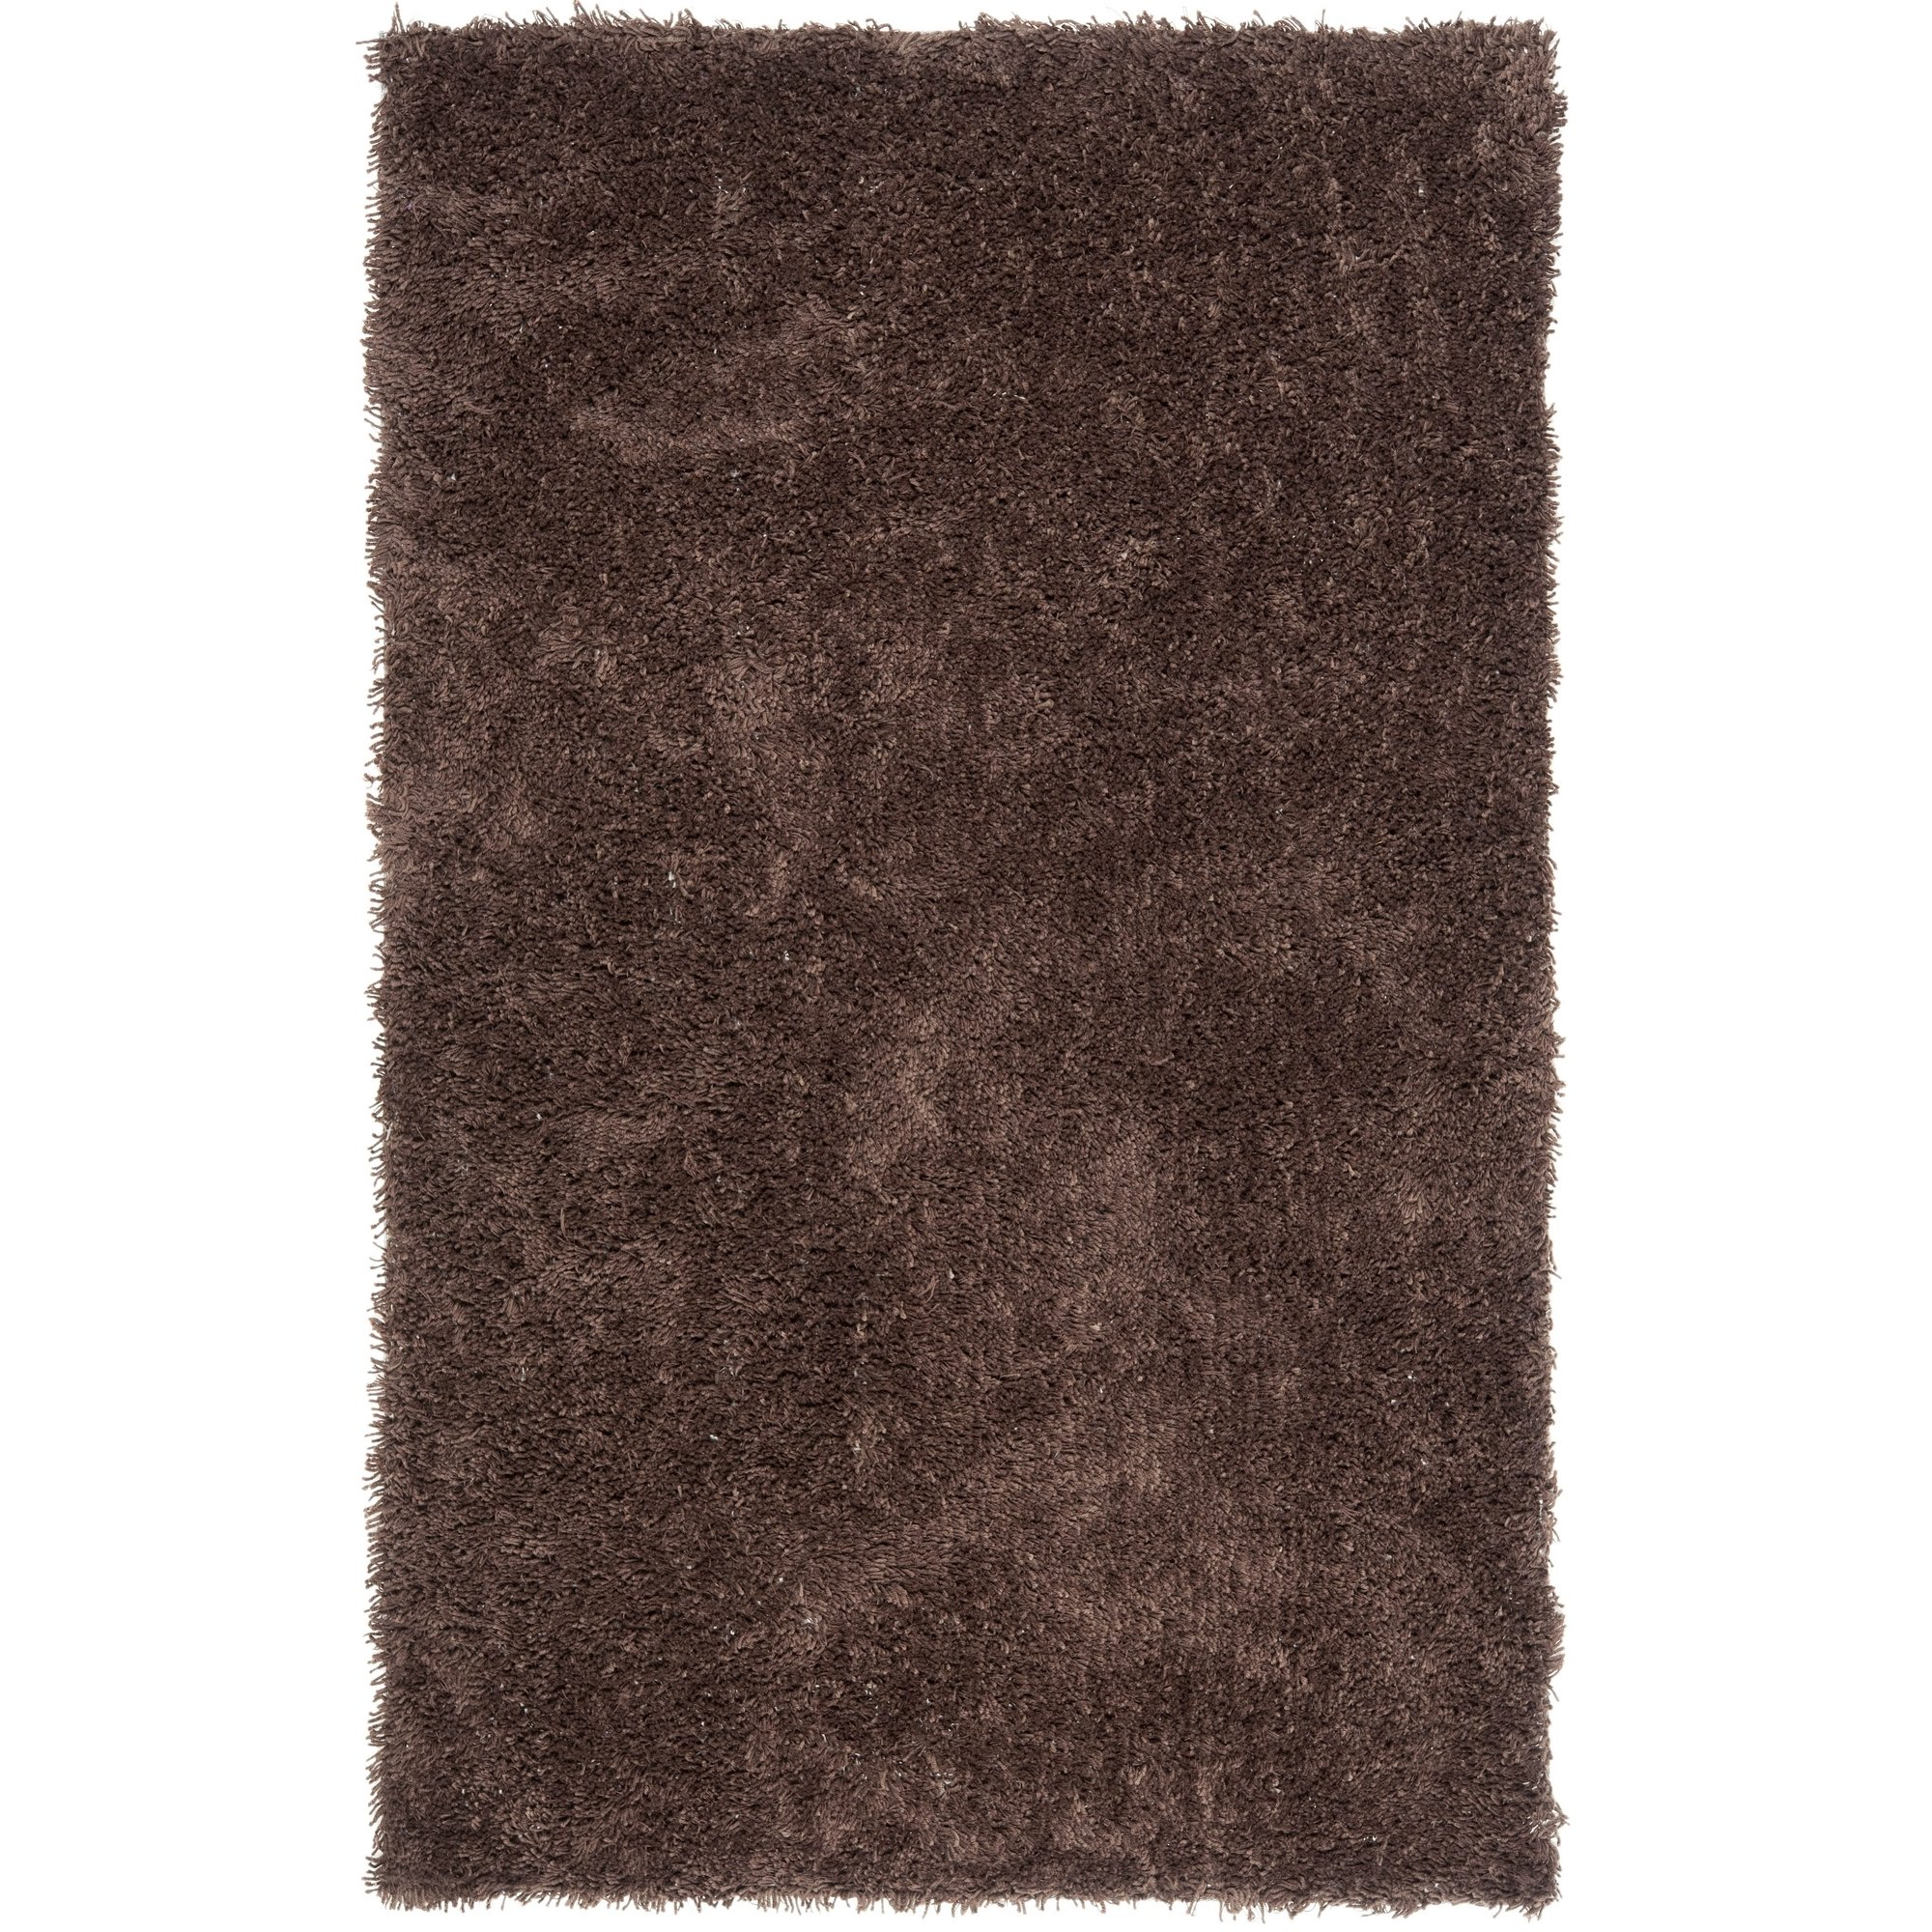 Safavieh Classic Shag Collection SG240E Handmade Chocolate Area Rug (4' x 6') by Safavieh